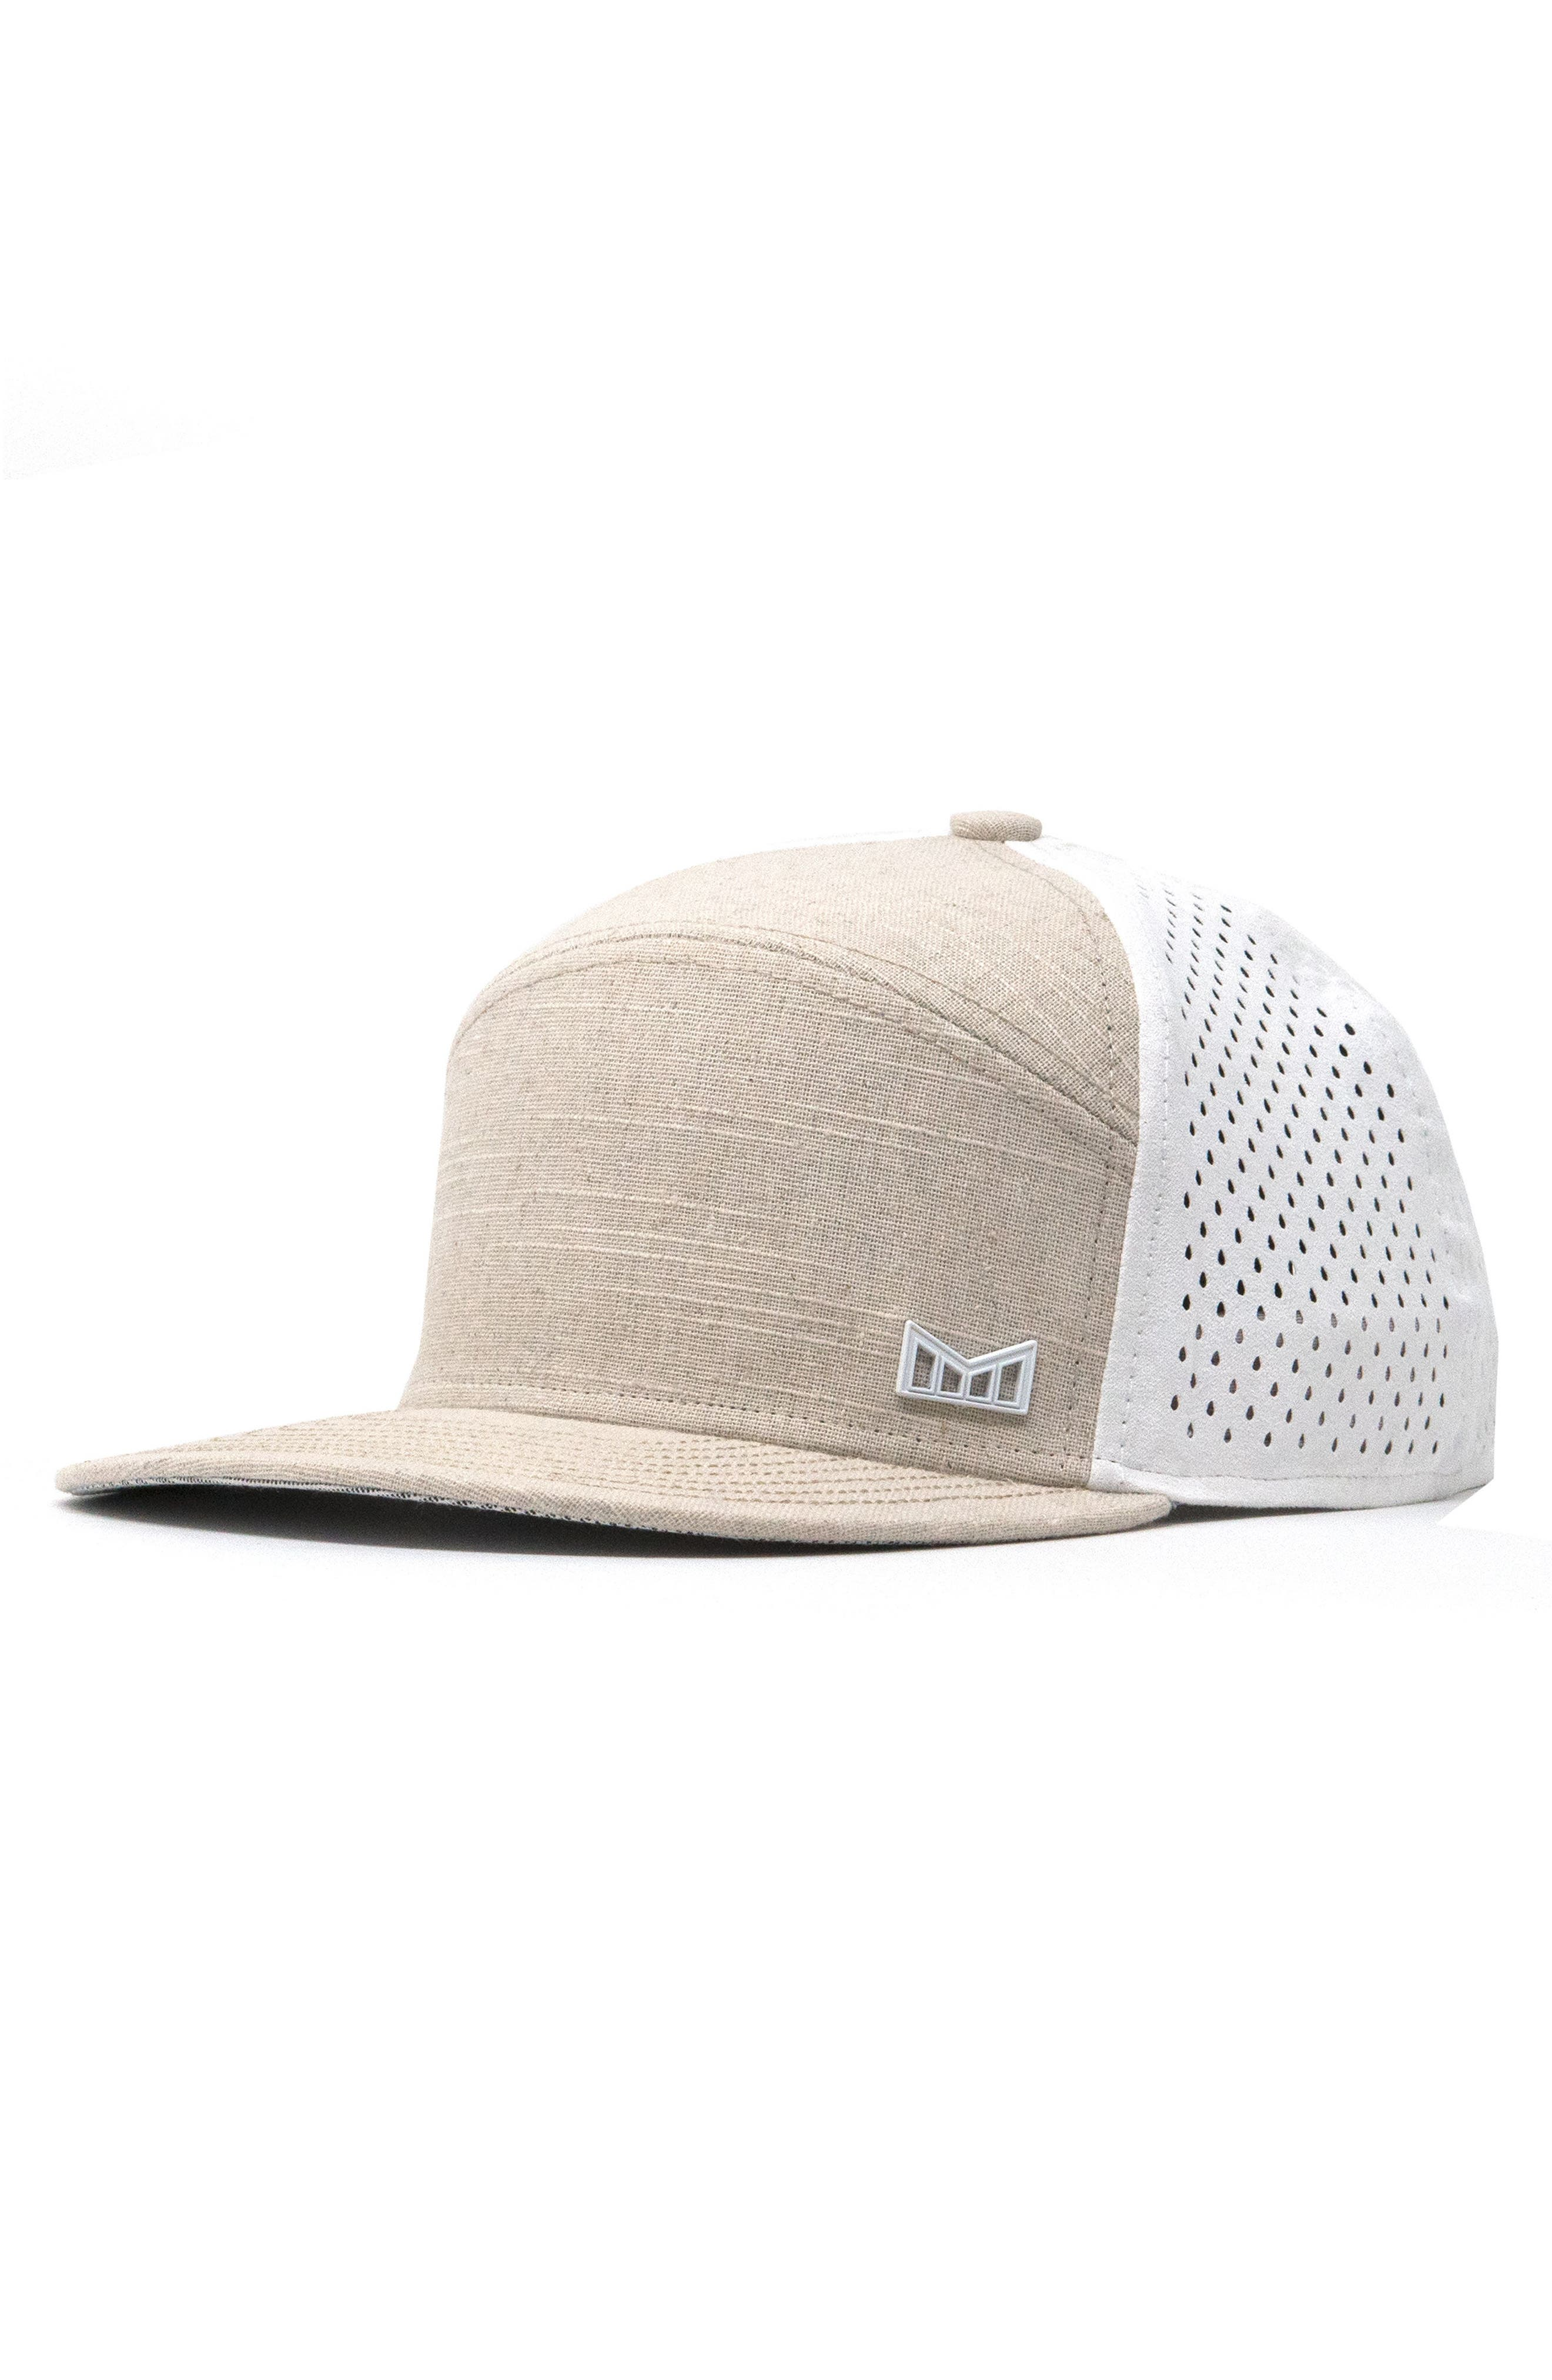 MELIN TRENCHES SNAPBACK BASEBALL CAP - BEIGE